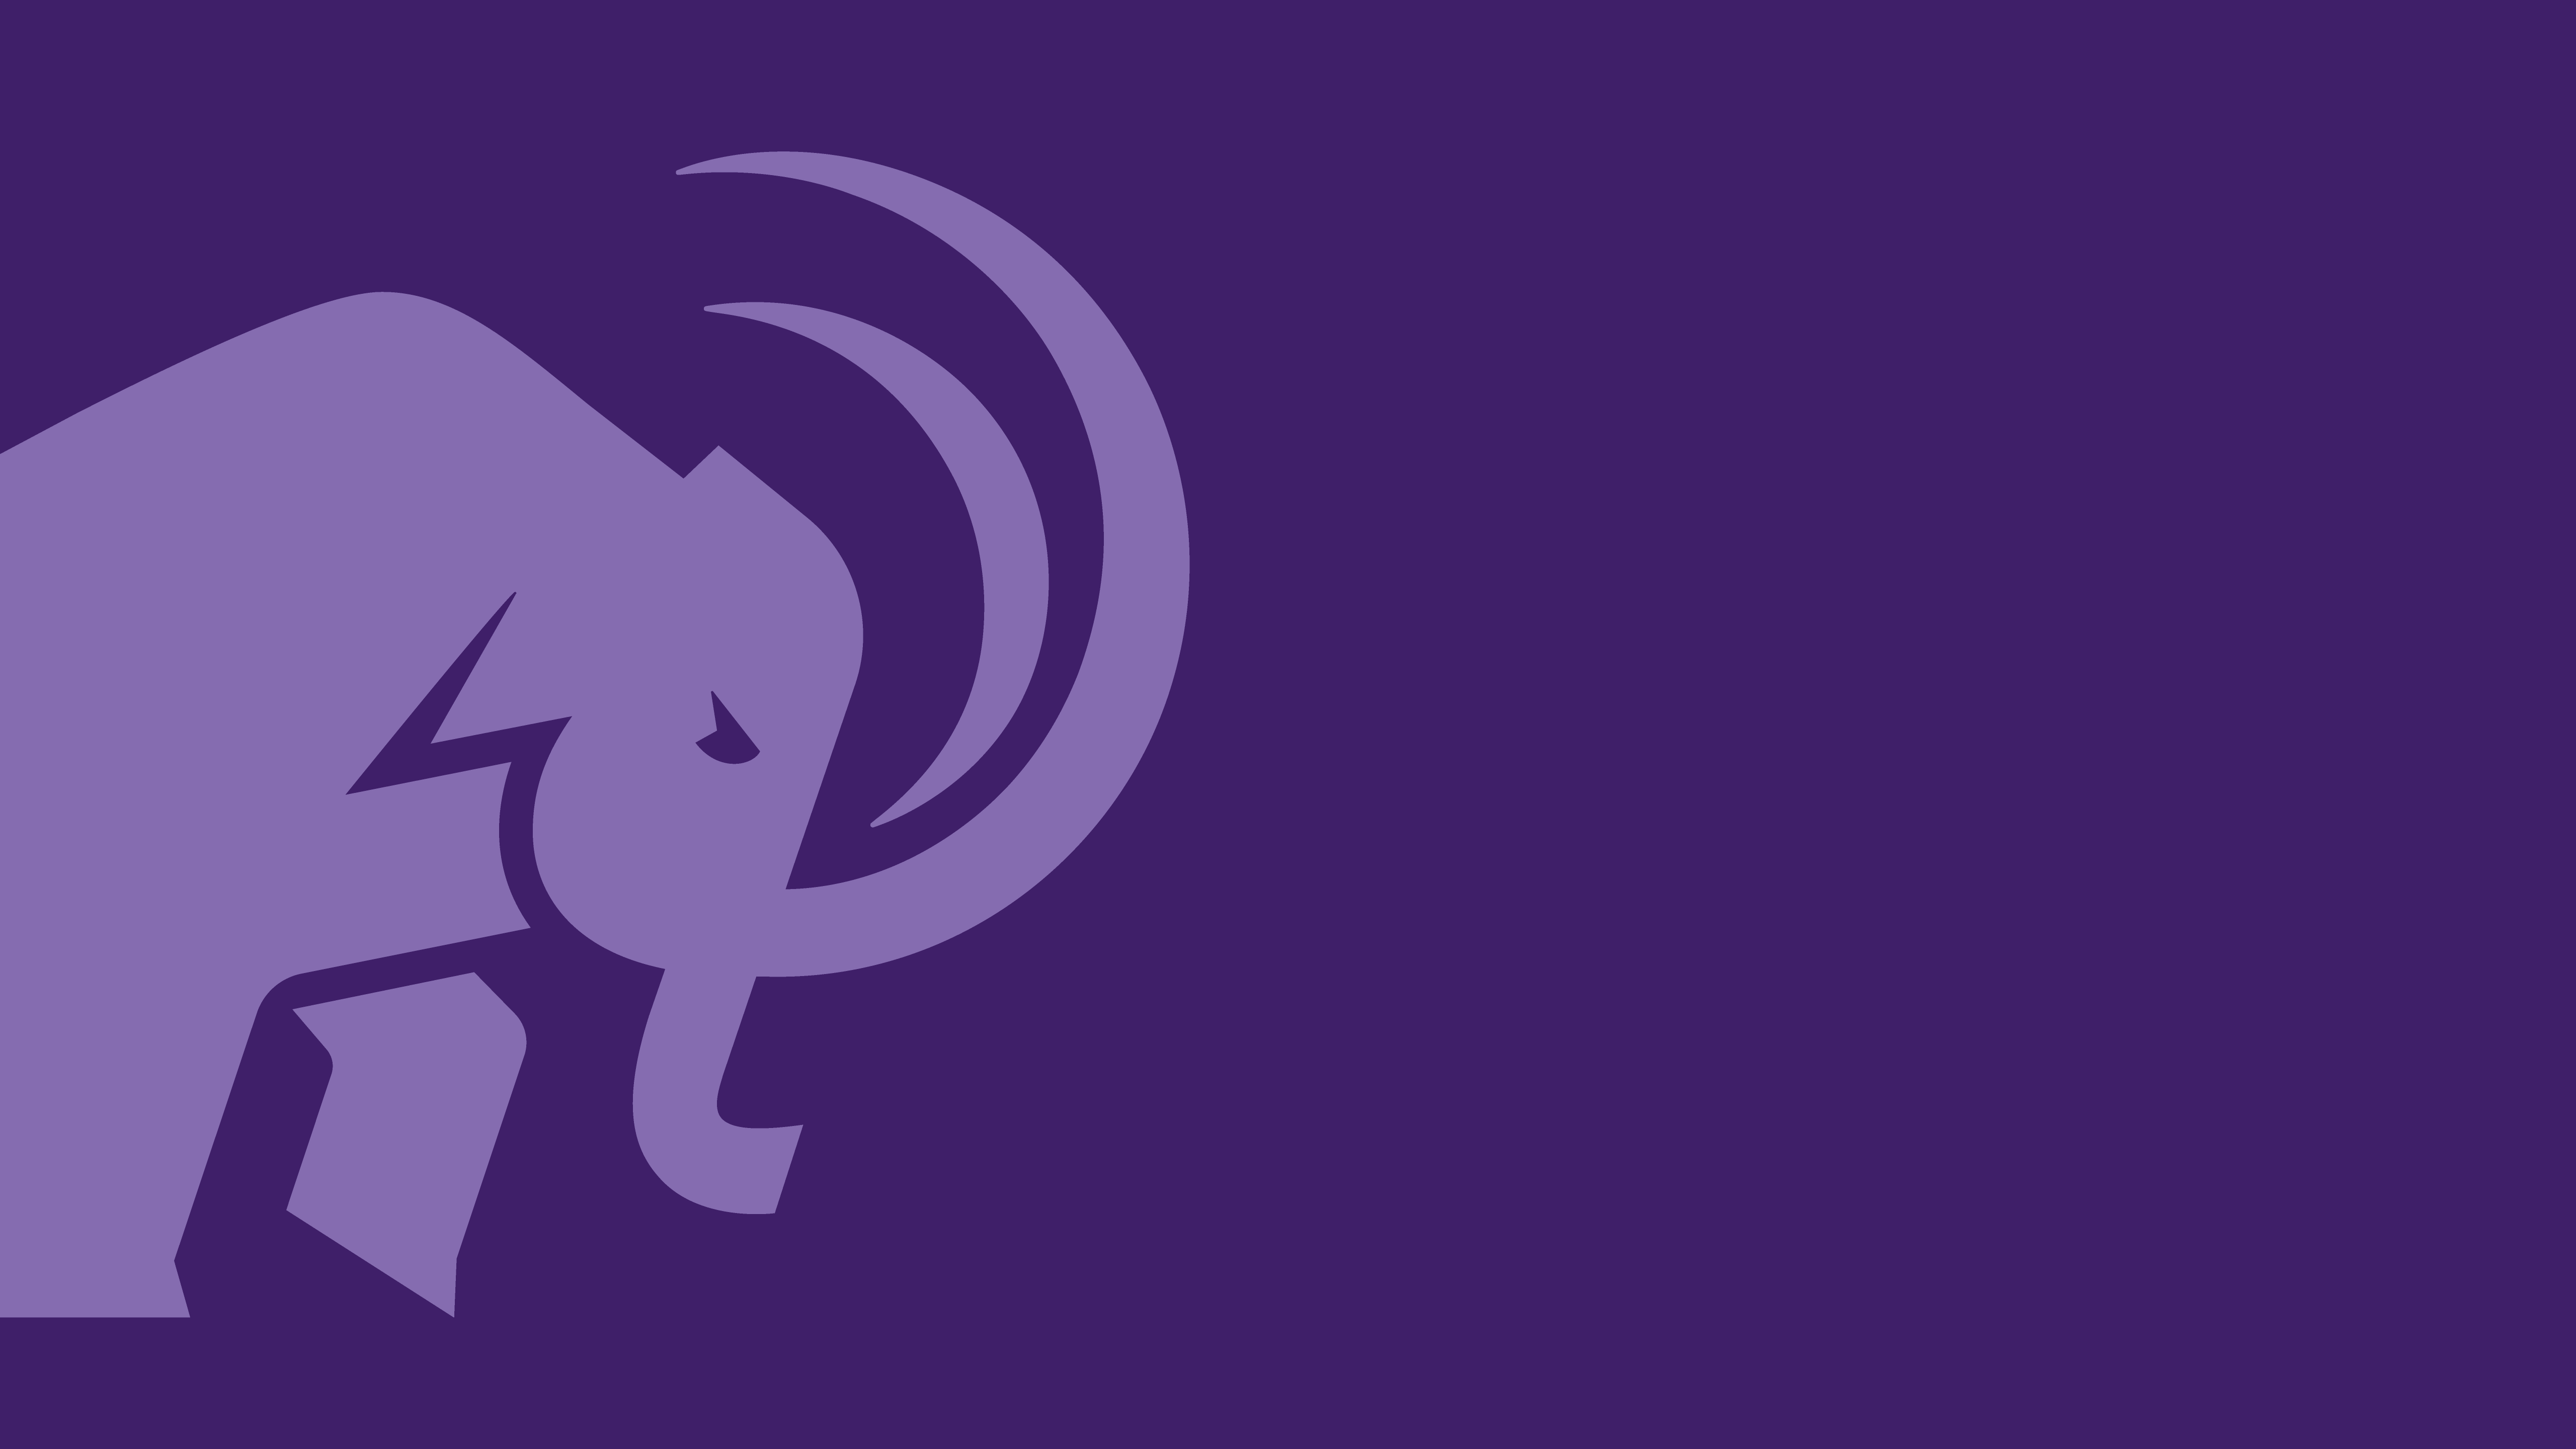 Light purple mammoth cropped logo on dark purple background